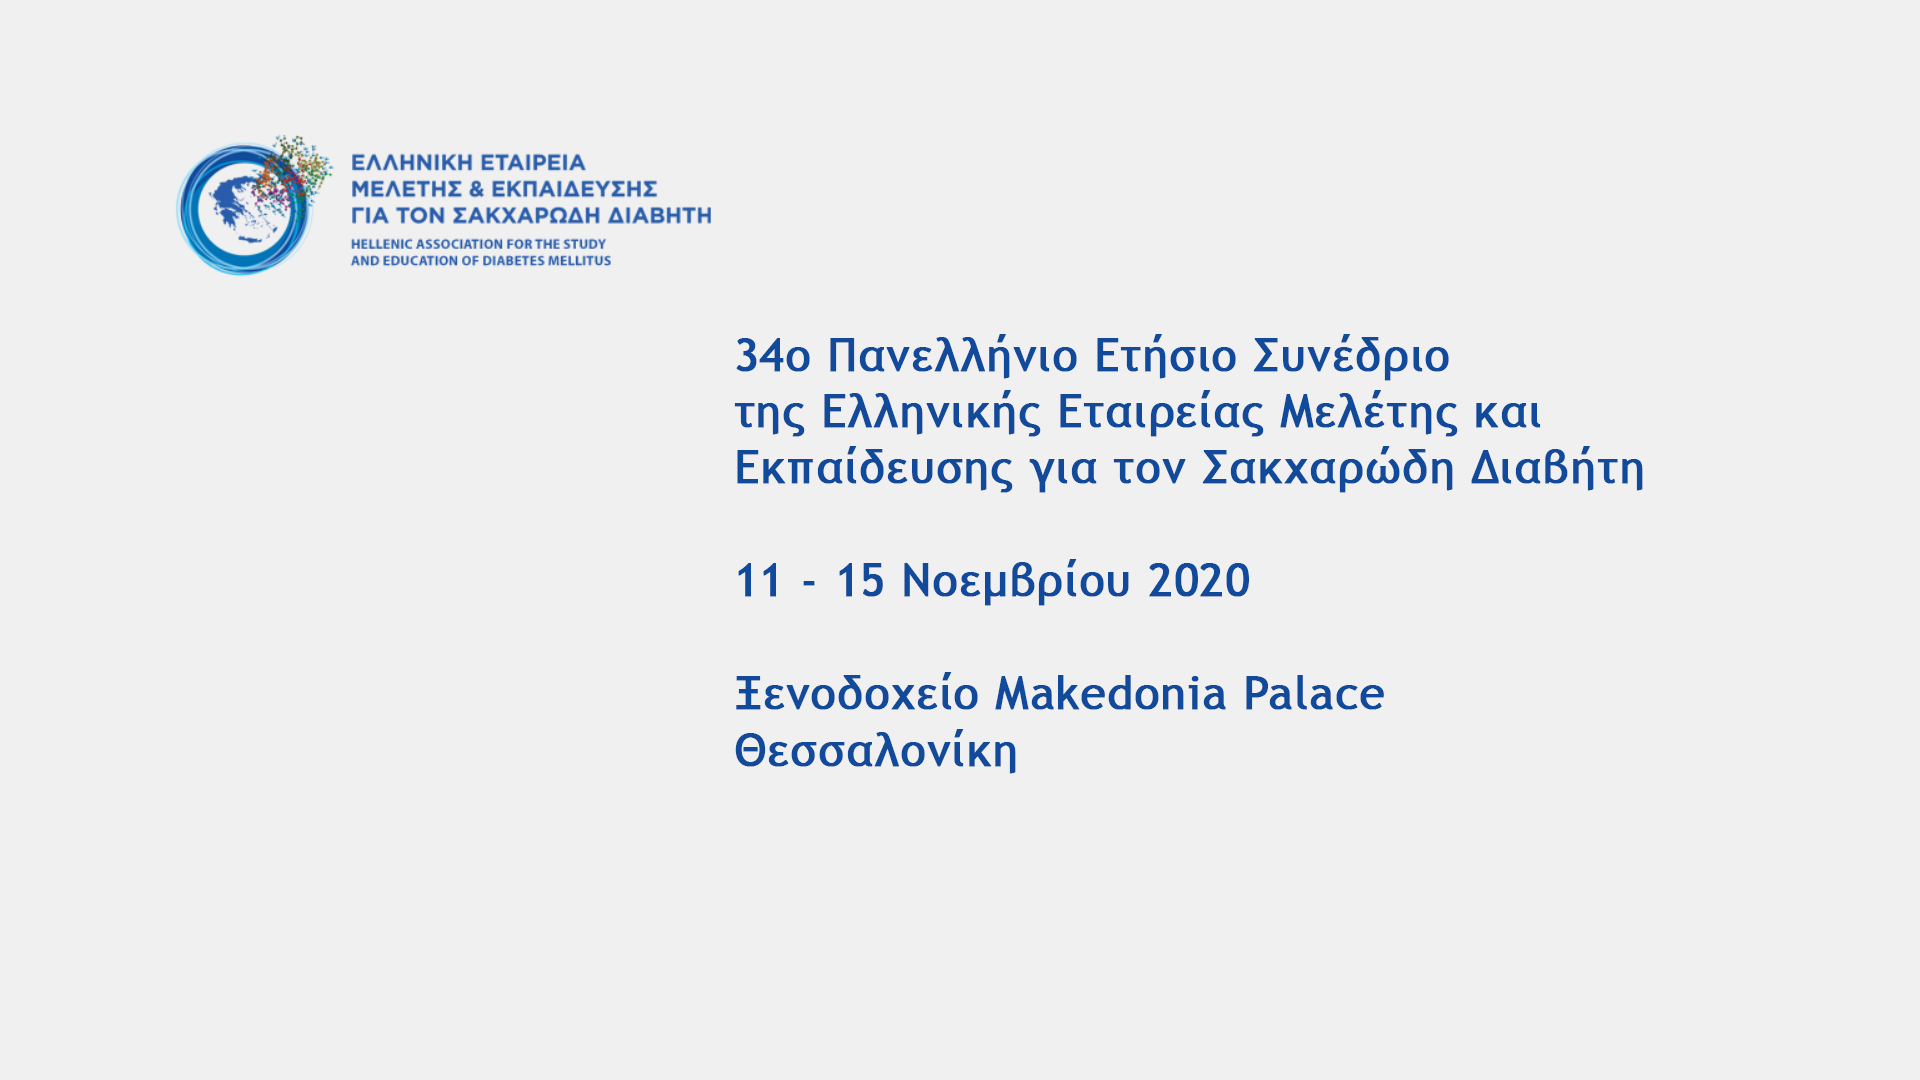 34th Hellenic Annual Congress of the Hellenic Association for the Study & Education of Diabetes Mellitus